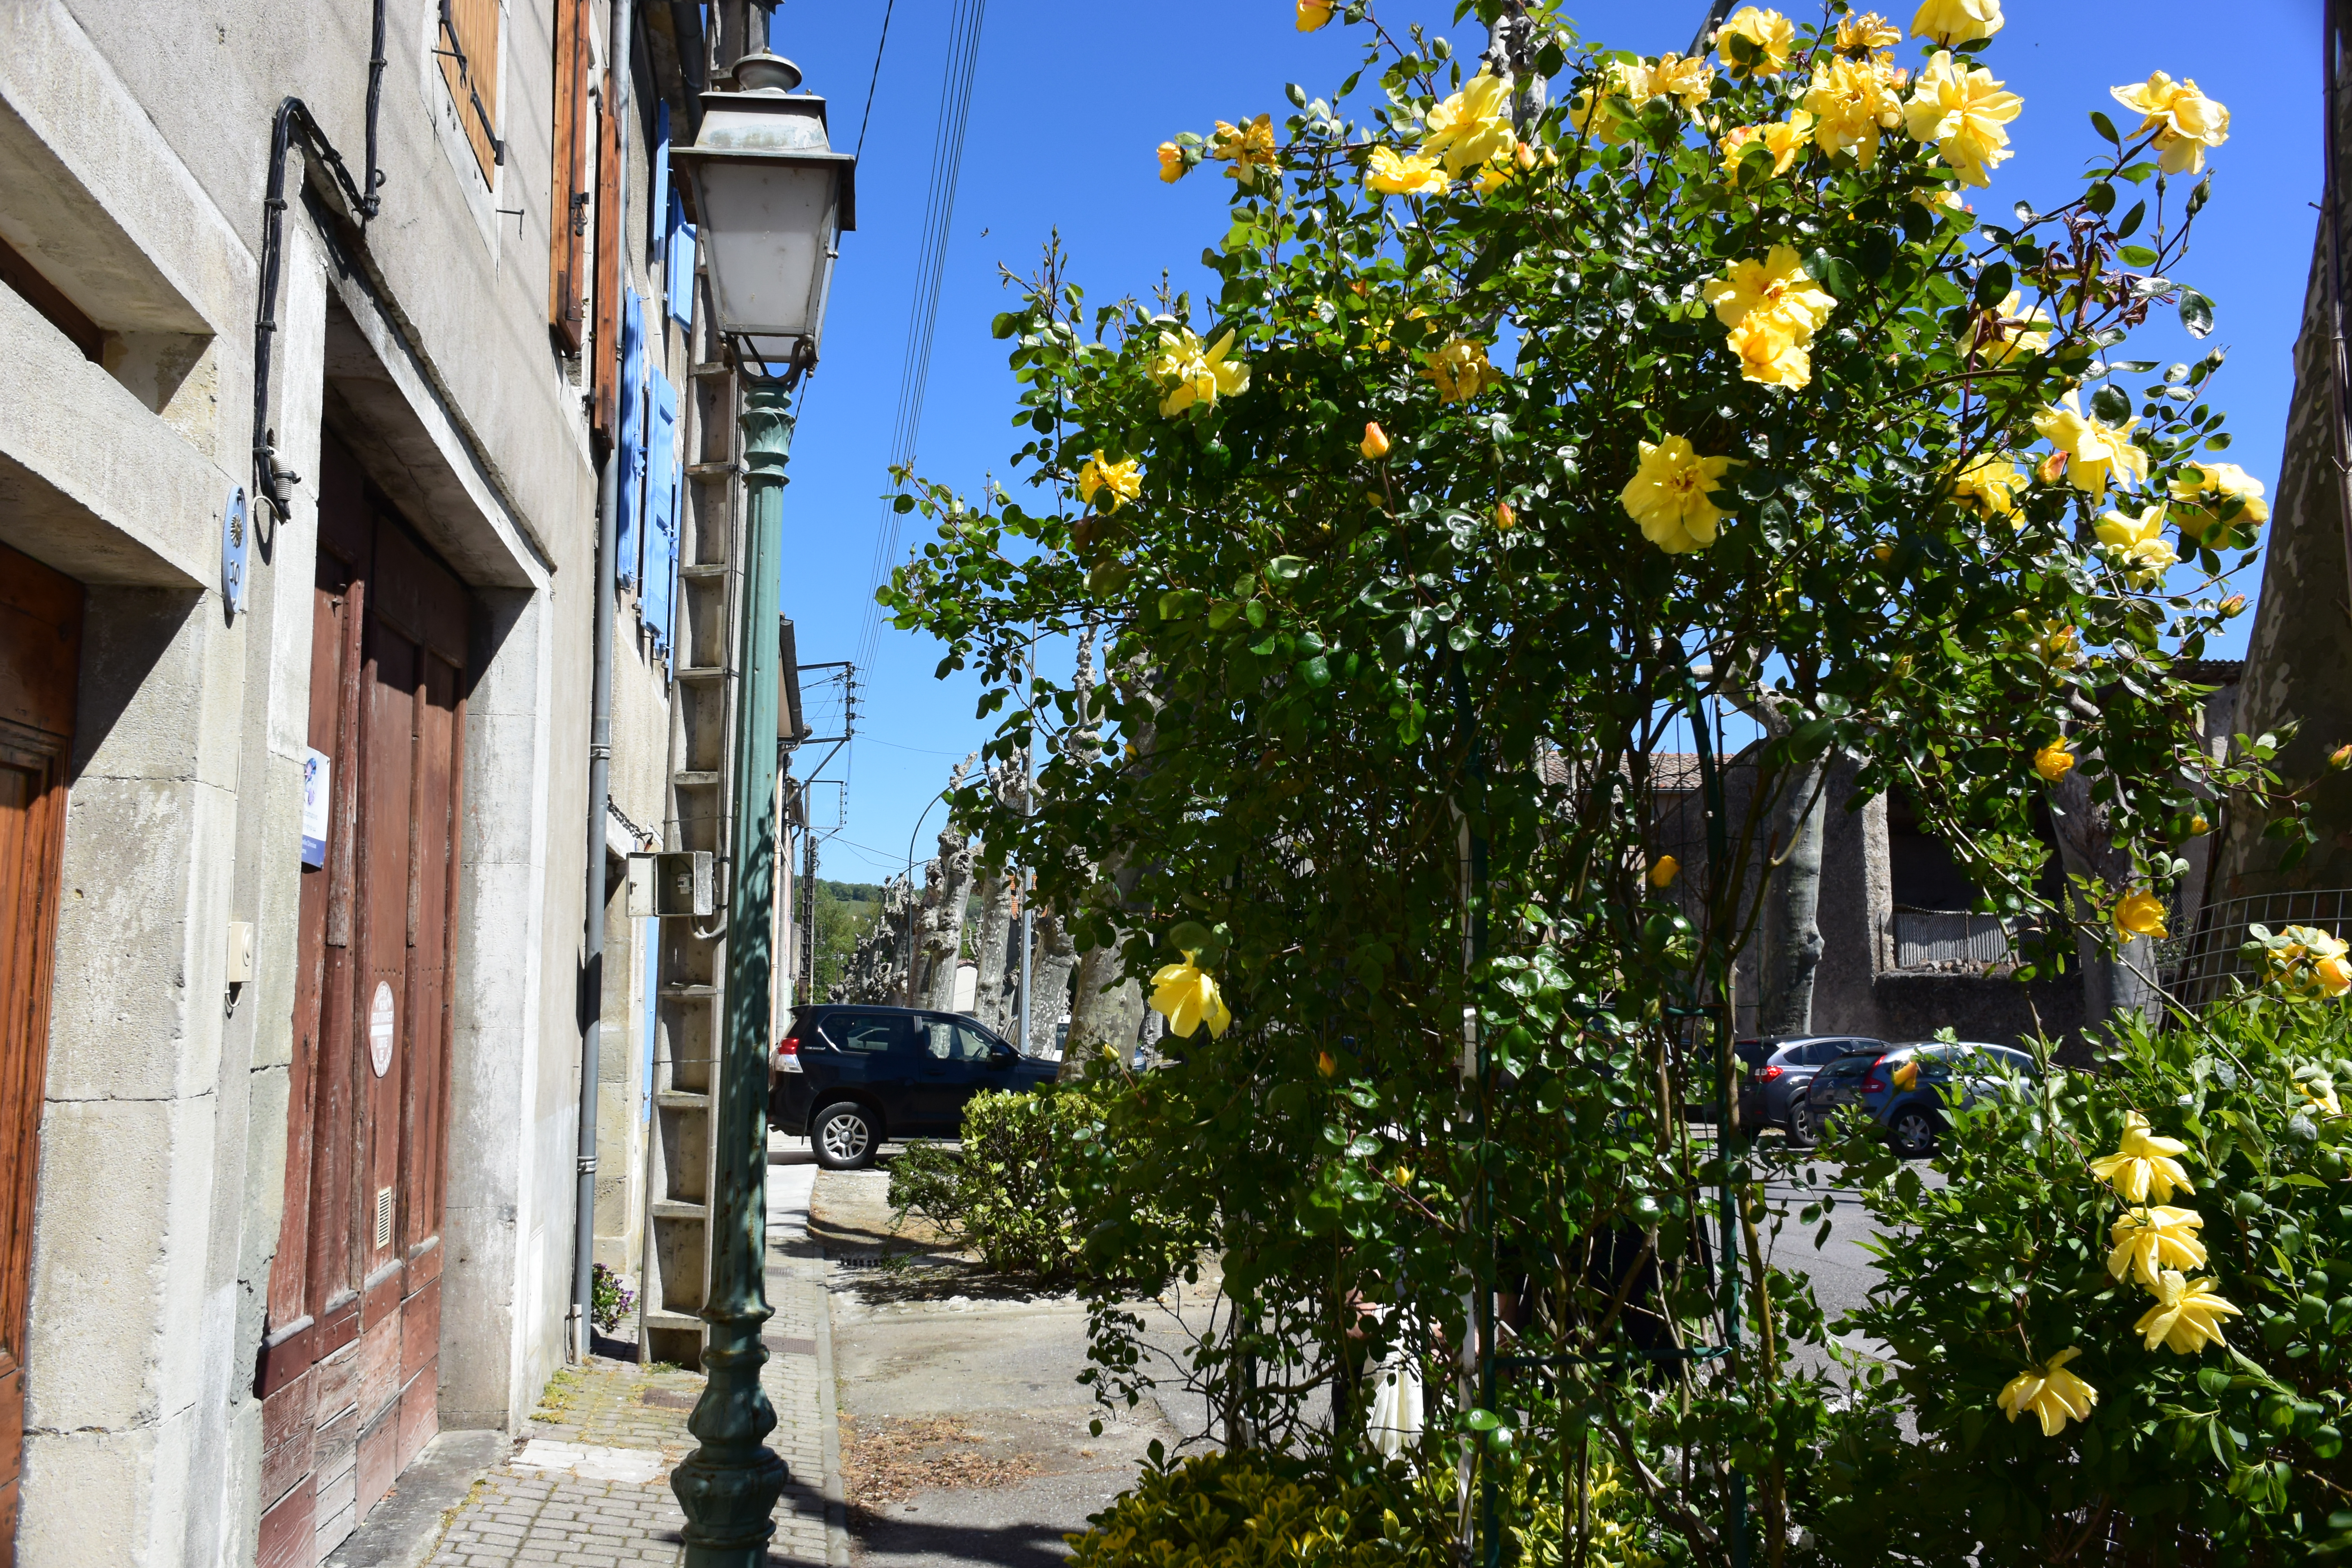 Yello flowers blooming in Mirepoix